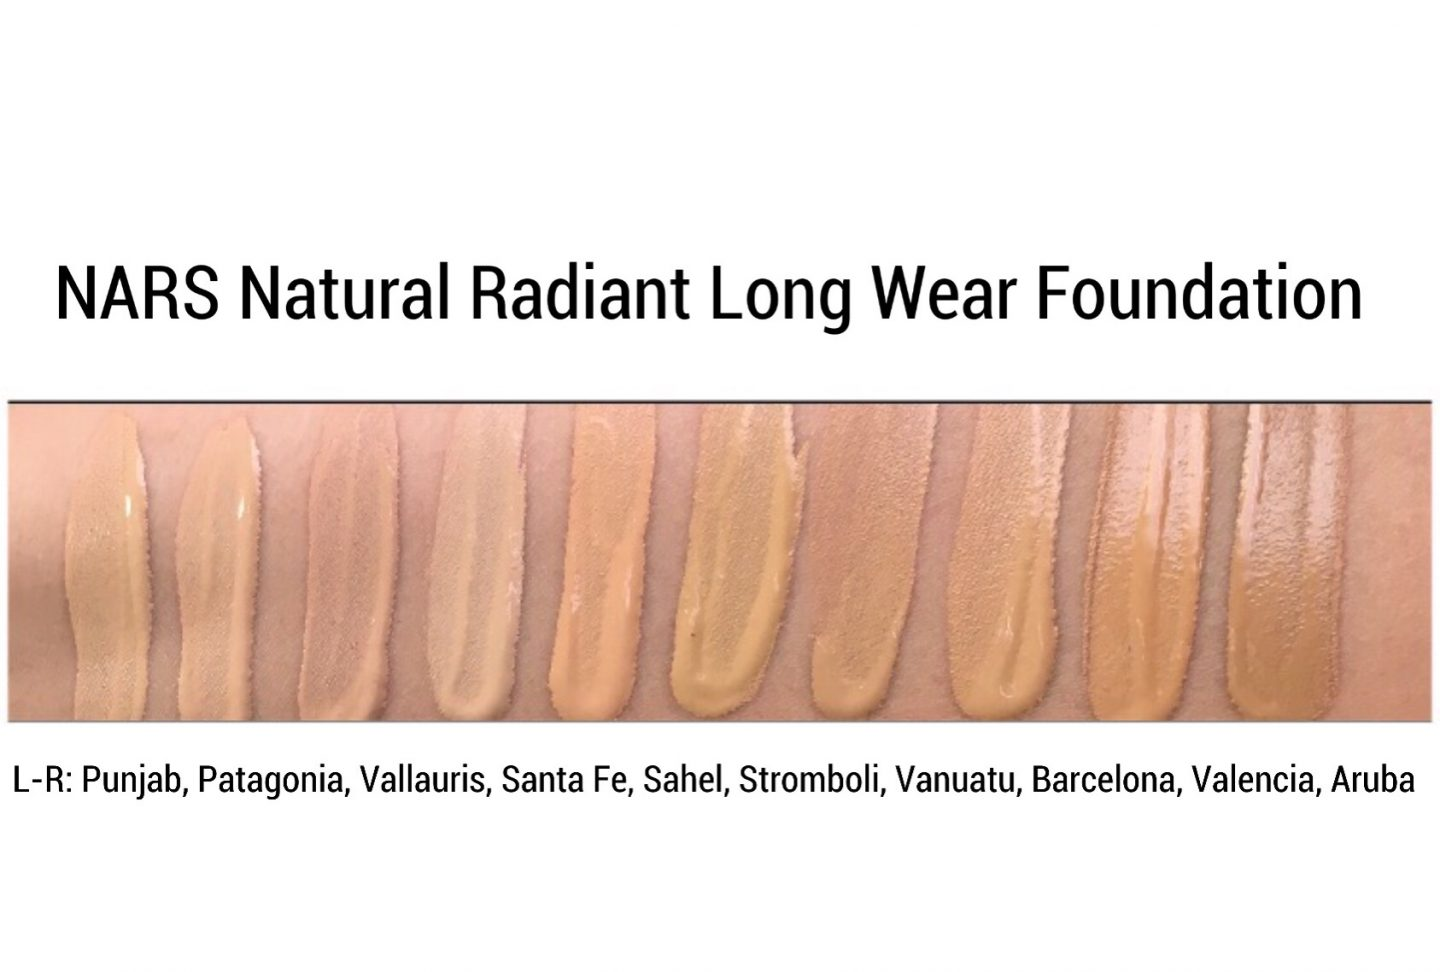 NARS NATURAL RADIANT LONG WEAR FOUNDATION REVIEW SWATCHES www.calibeaute.com